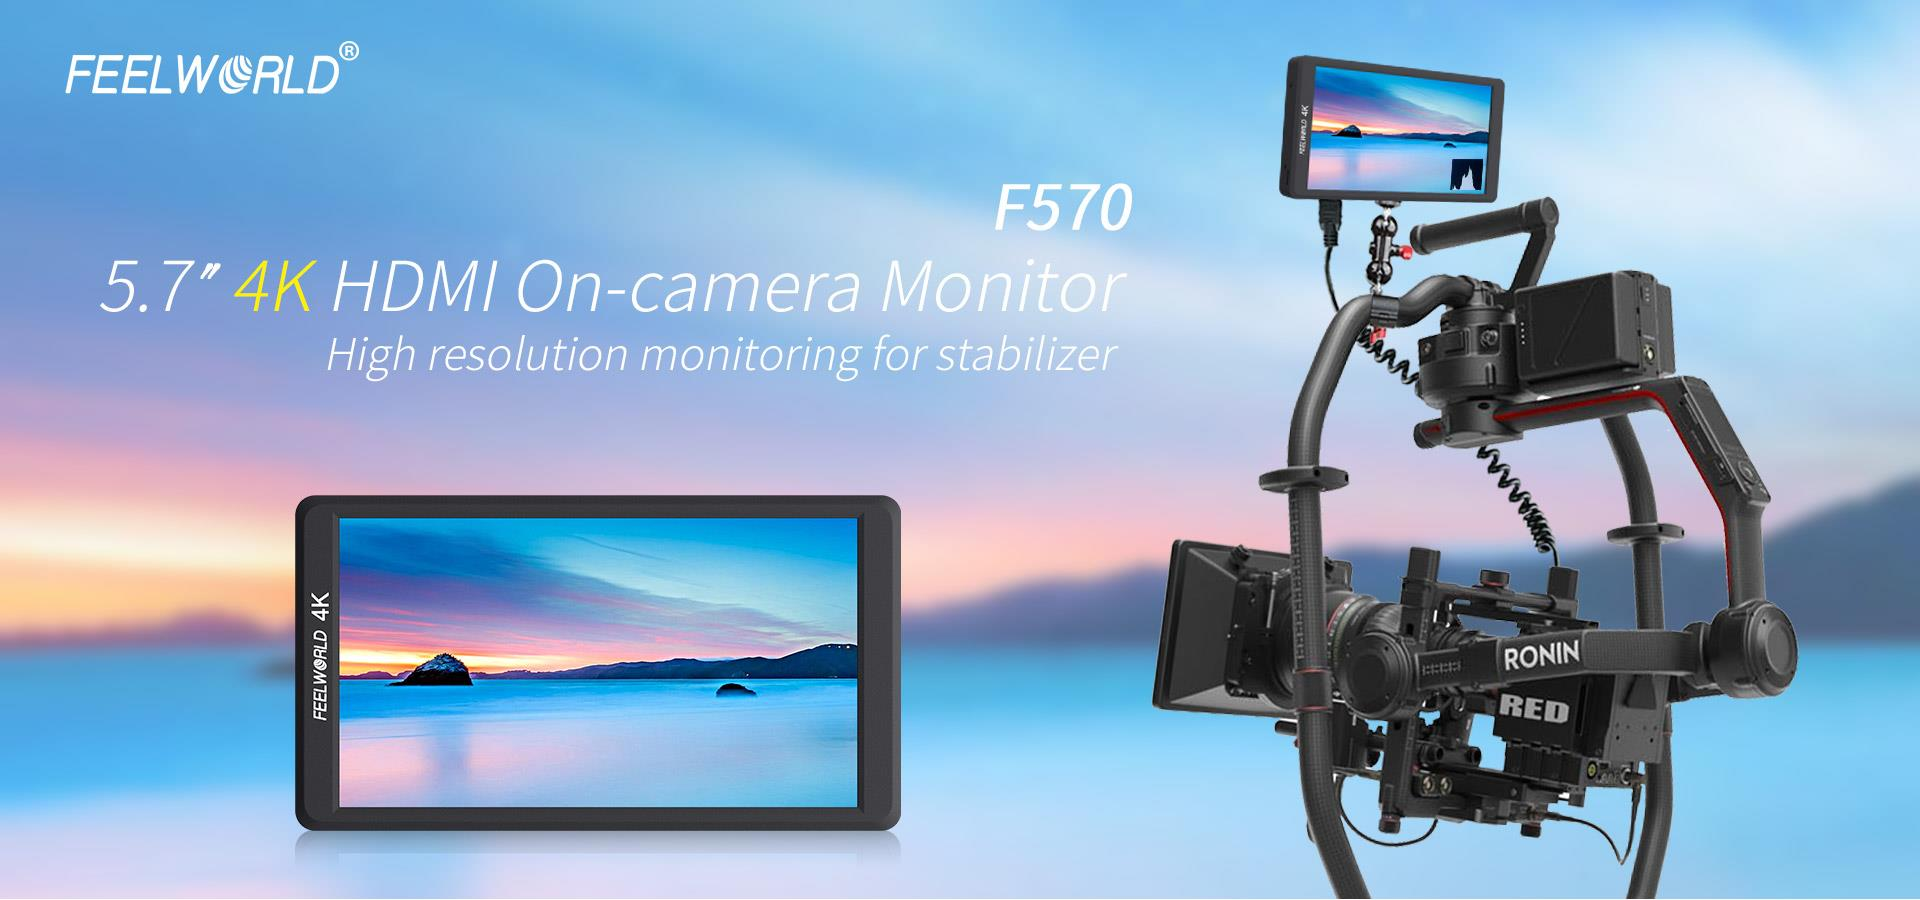 FEELWORLD F570 5.7″ 4K On-camera Monitor with HDMI Input ...